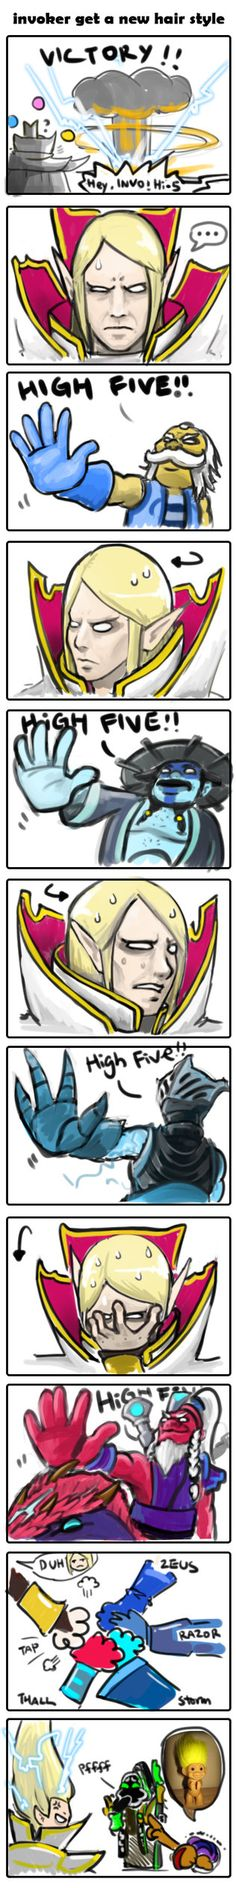 How Invoker's immortal was made lol yesss